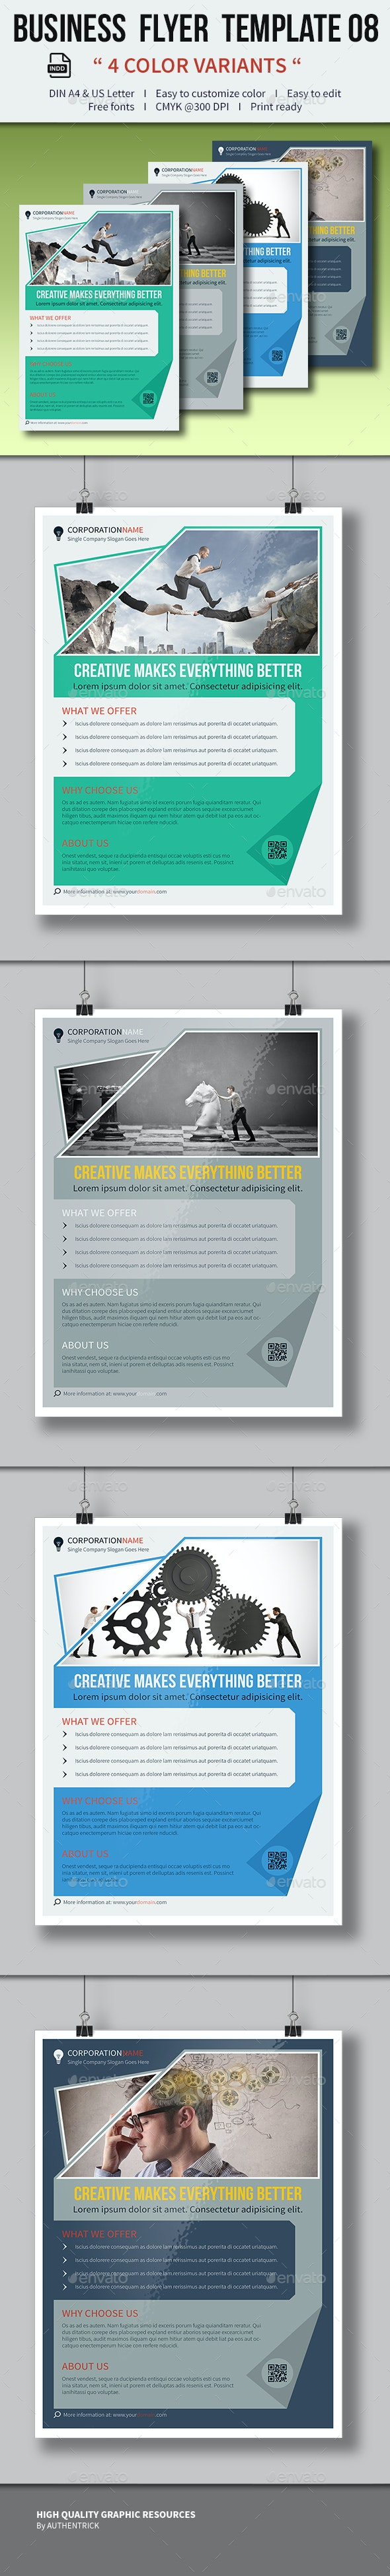 Business Flyer Template 08 - Corporate Flyers